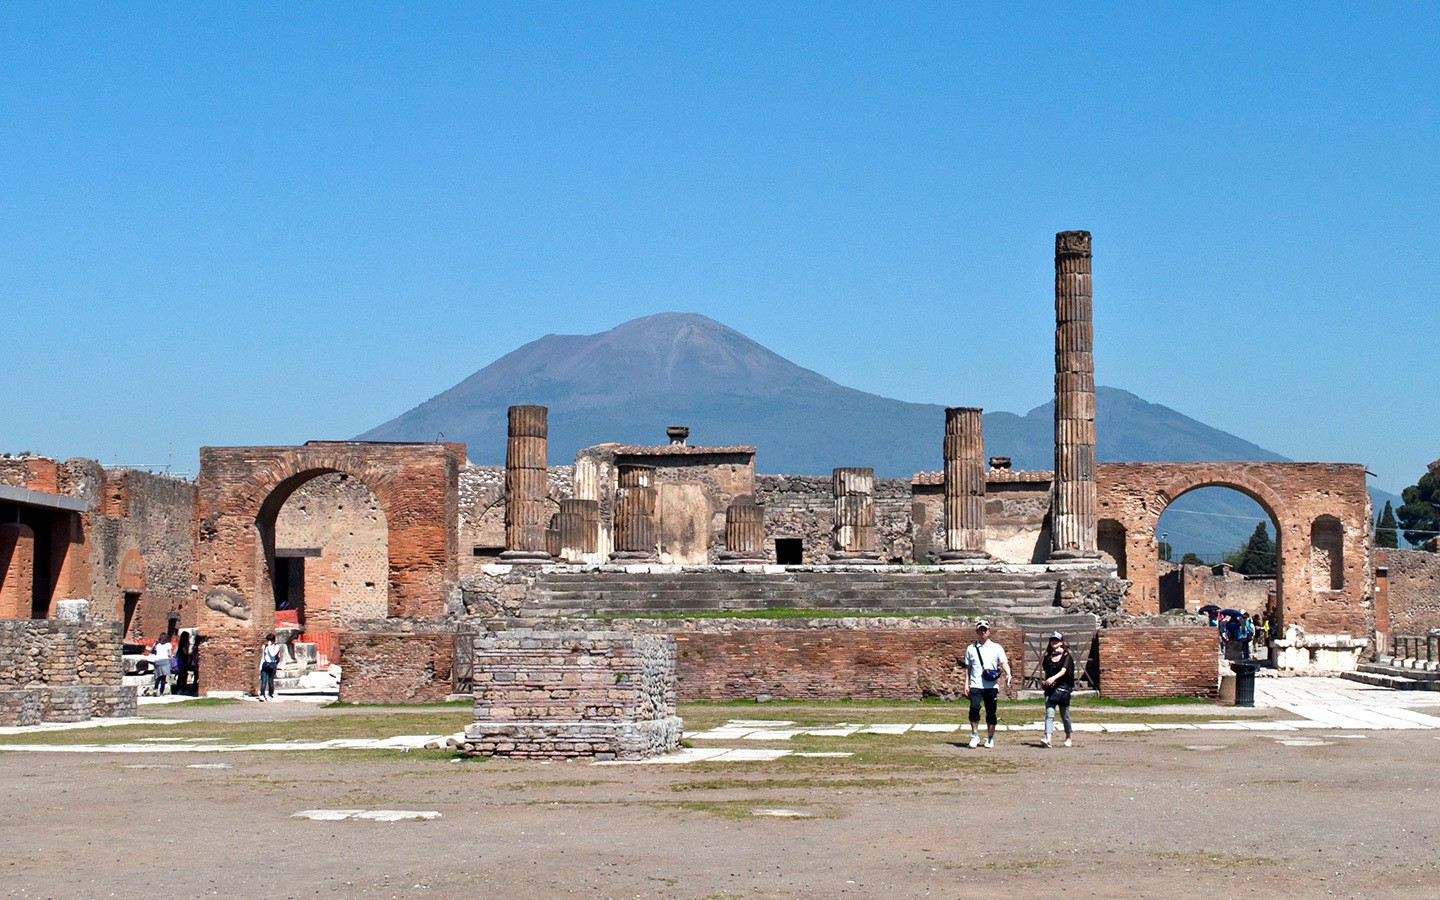 Visiting Pompeii, Italy: The Roman city frozen in time